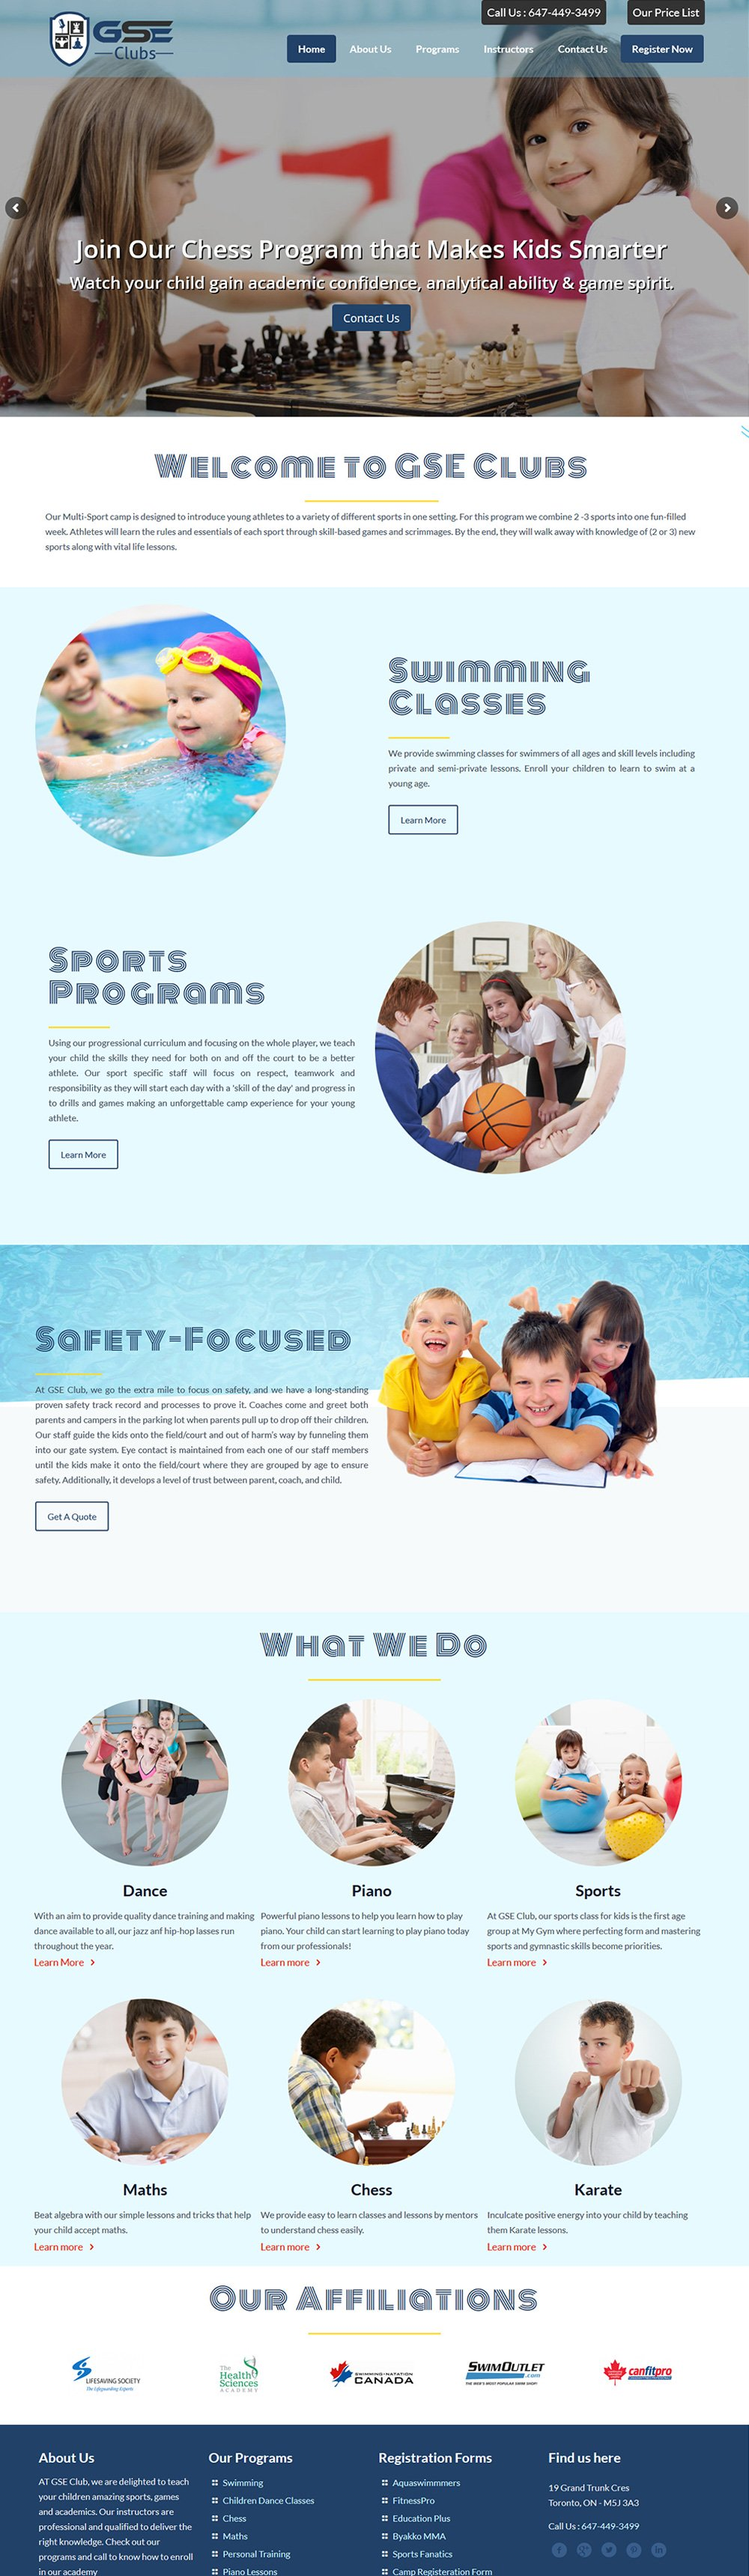 Website Design Burlington, Ontario